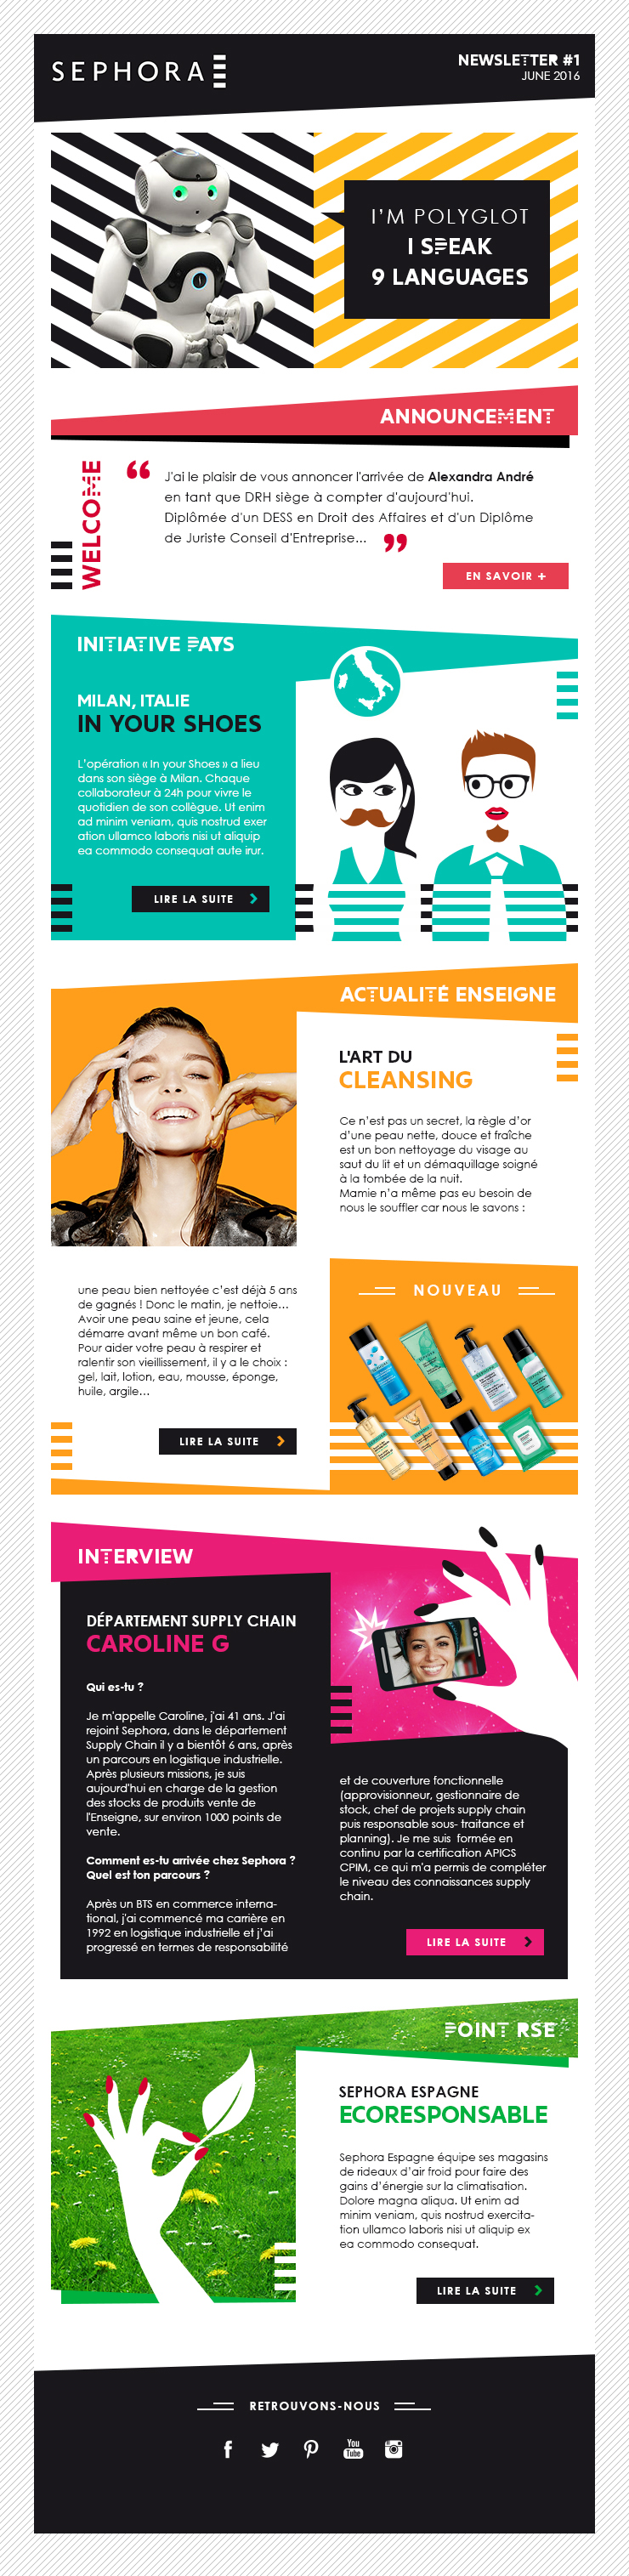 Newsletter_Sephora_2